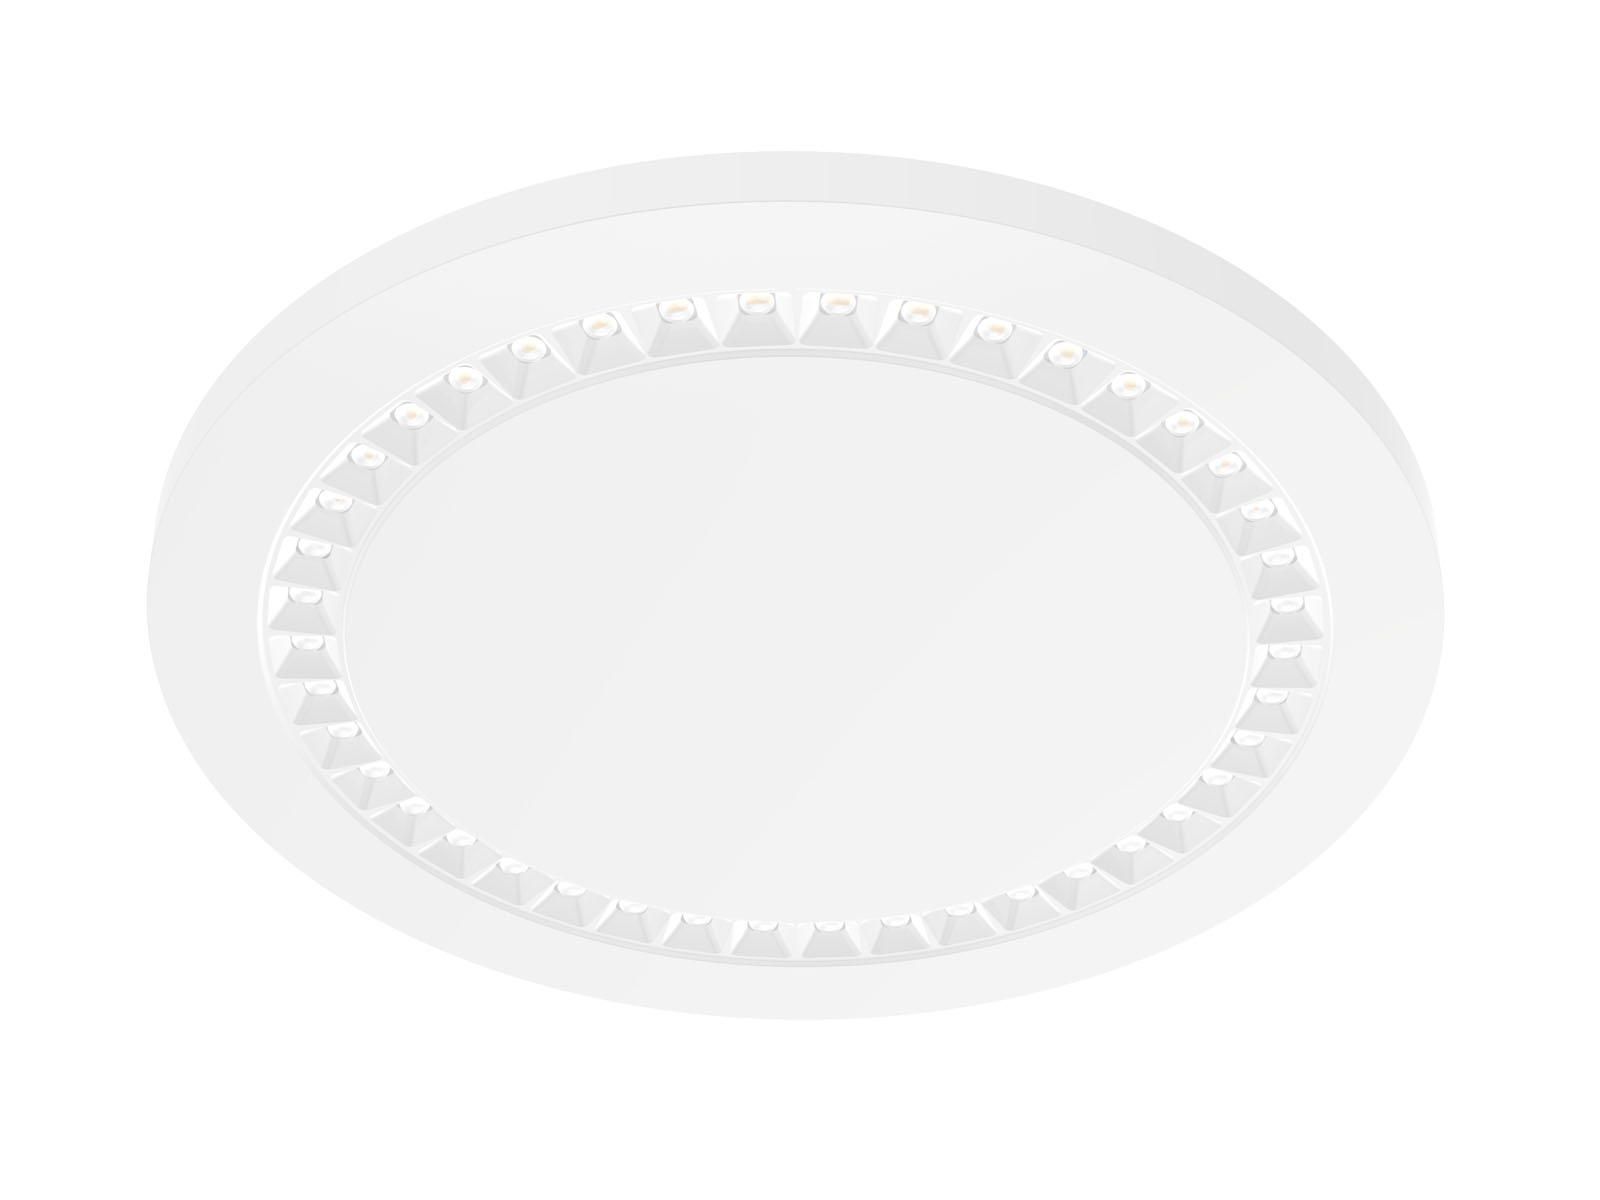 AL37 LED Ceiling Light